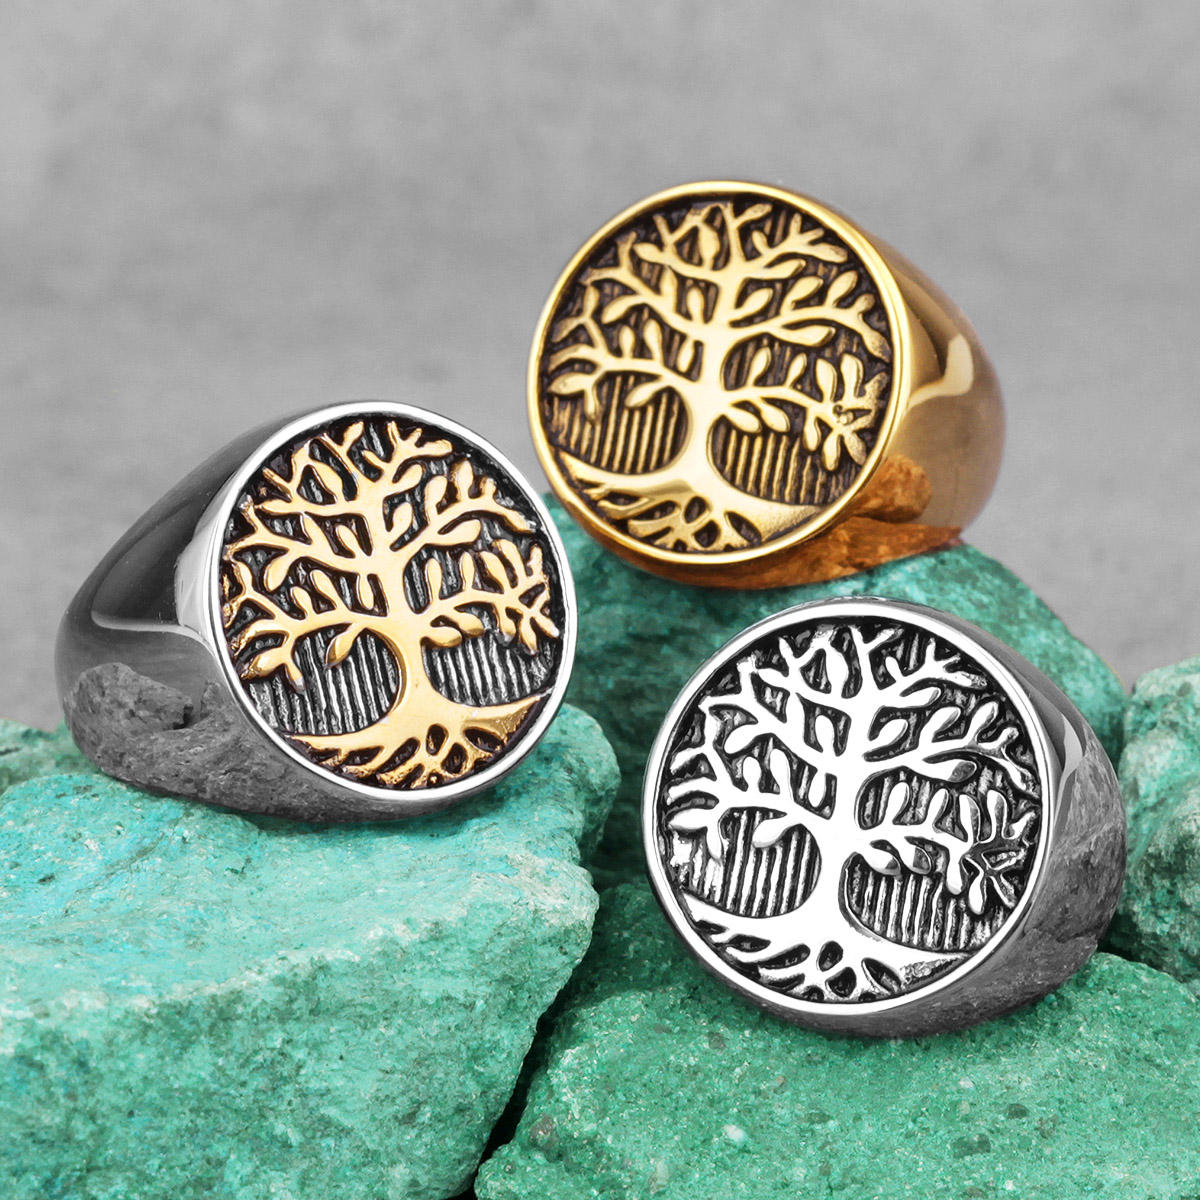 Tree of Life Amulet Stainless Steel Mens Rings Simple Elegant Charm for Male Boyfriend Biker Jewelry Creativity Gift Wholesale